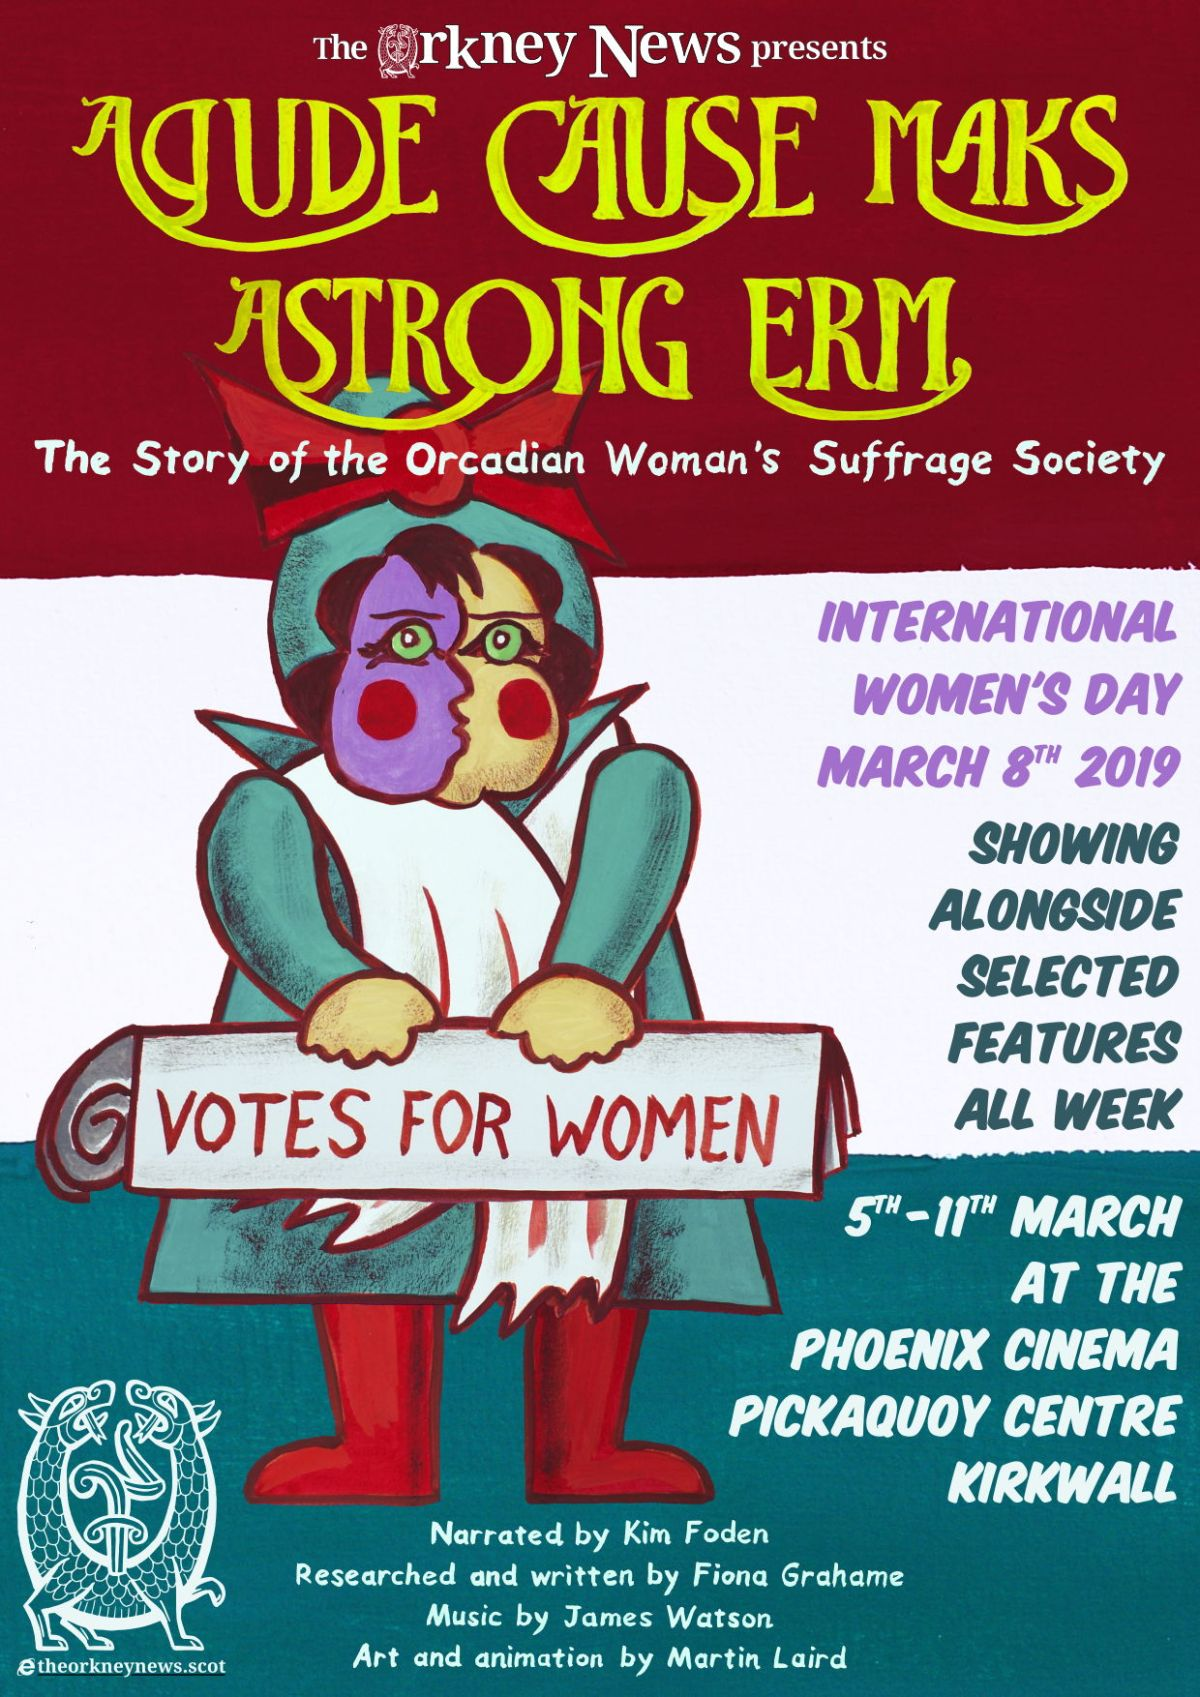 Poster for A Gude Cause Maks A Strong Erm - the story of the Orcadian Woman's Suffrage Society. Showing at Picky cinema from 5th to 9th of March to coincide with International Women's Day.